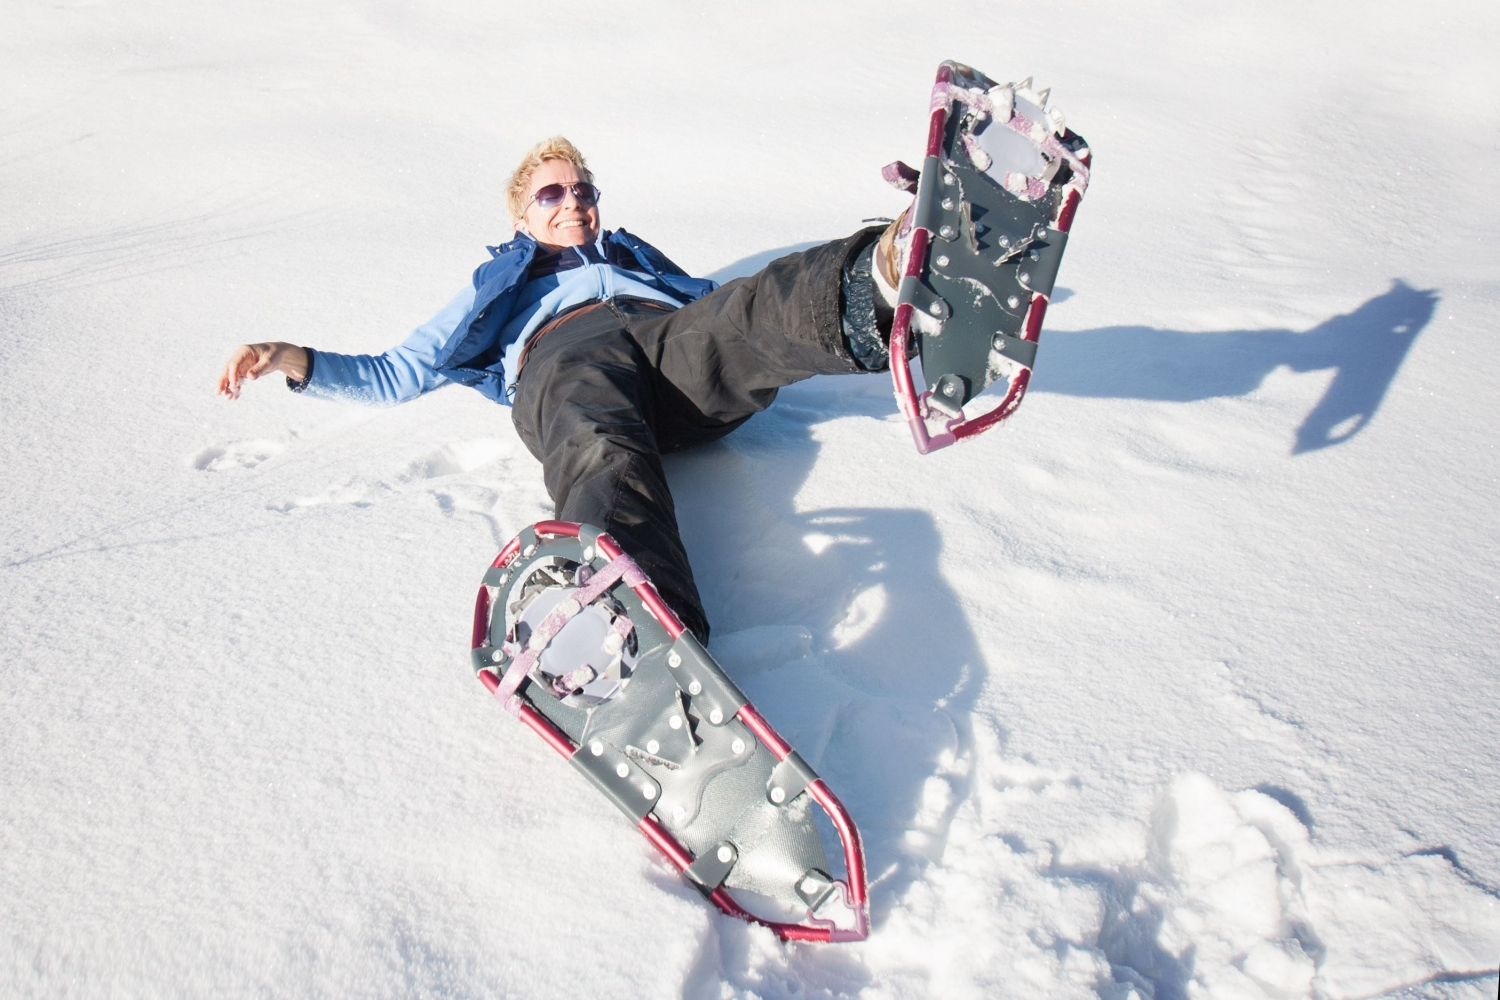 Person fallen down on the snow wearing snowshoes